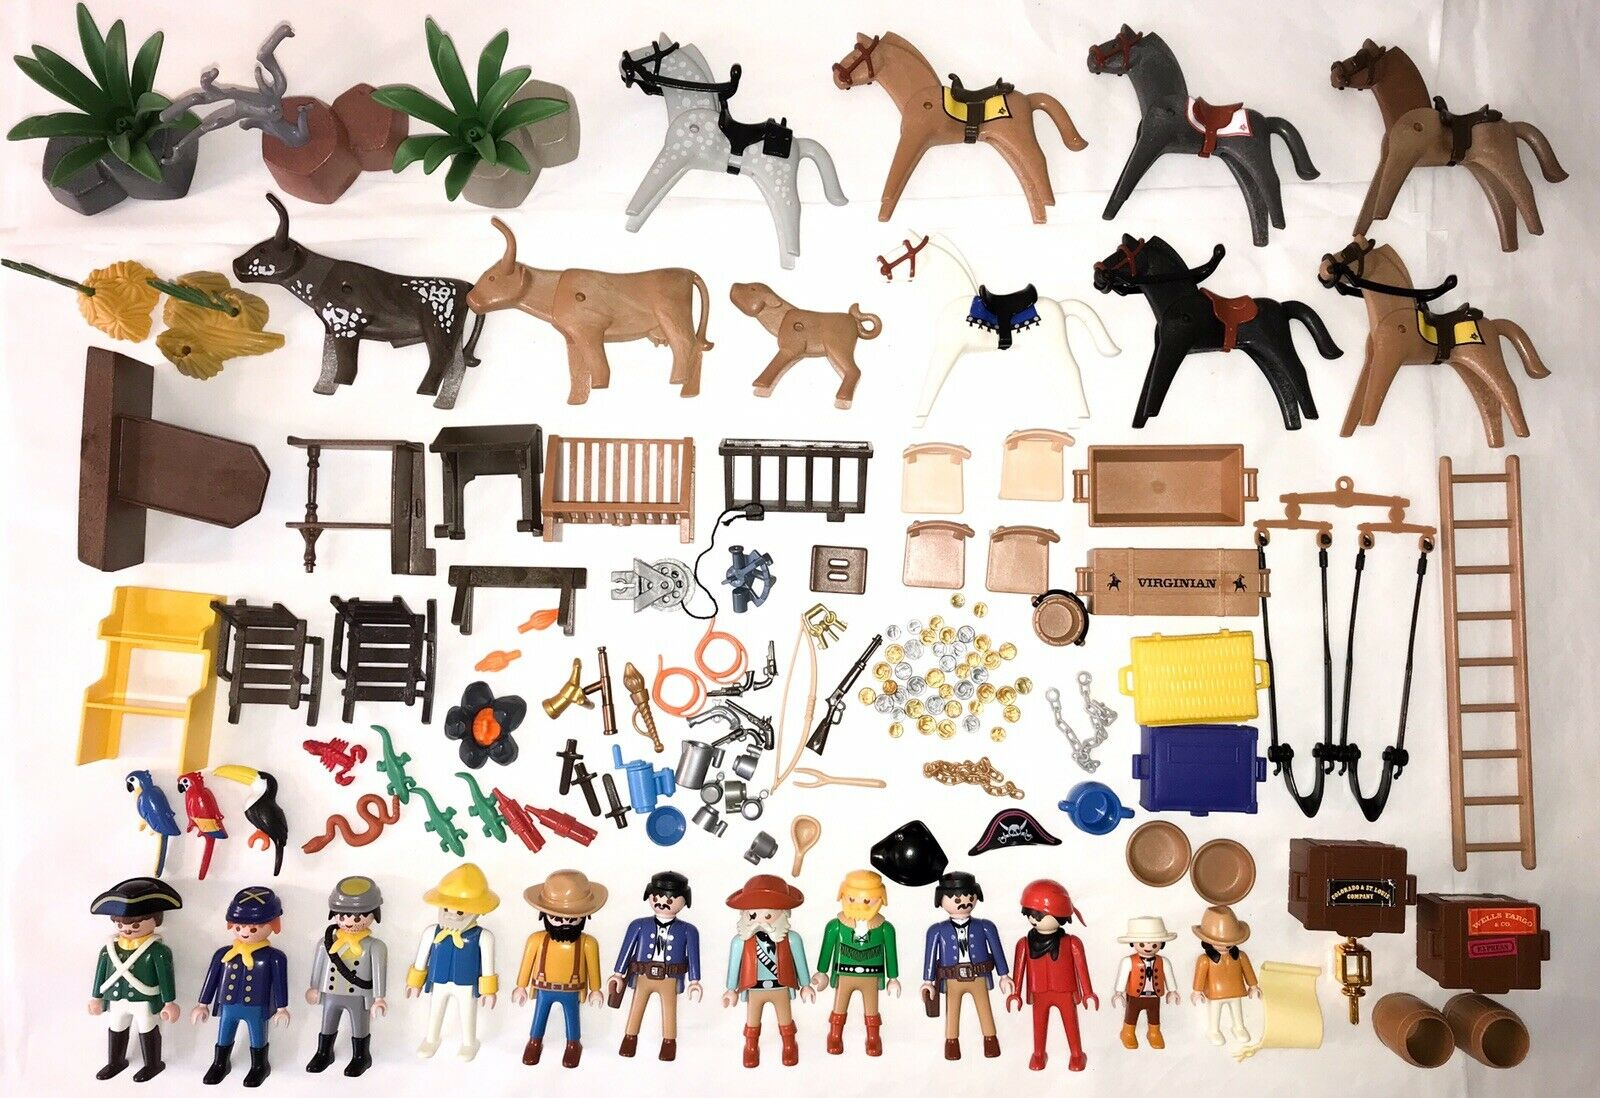 Playmobil WESTERN    PIRATE  PARTS  FIGURES  ACCESSORIES  FURNITURE  ANIMALS eaab16